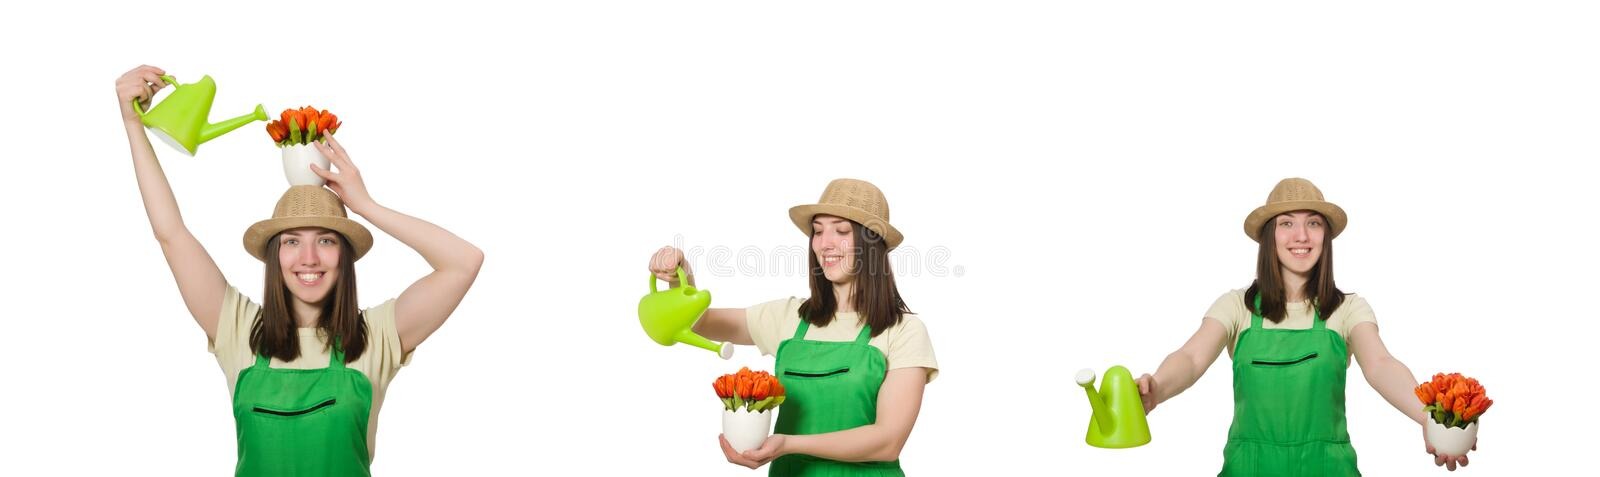 The girl watering plants on white stock photo